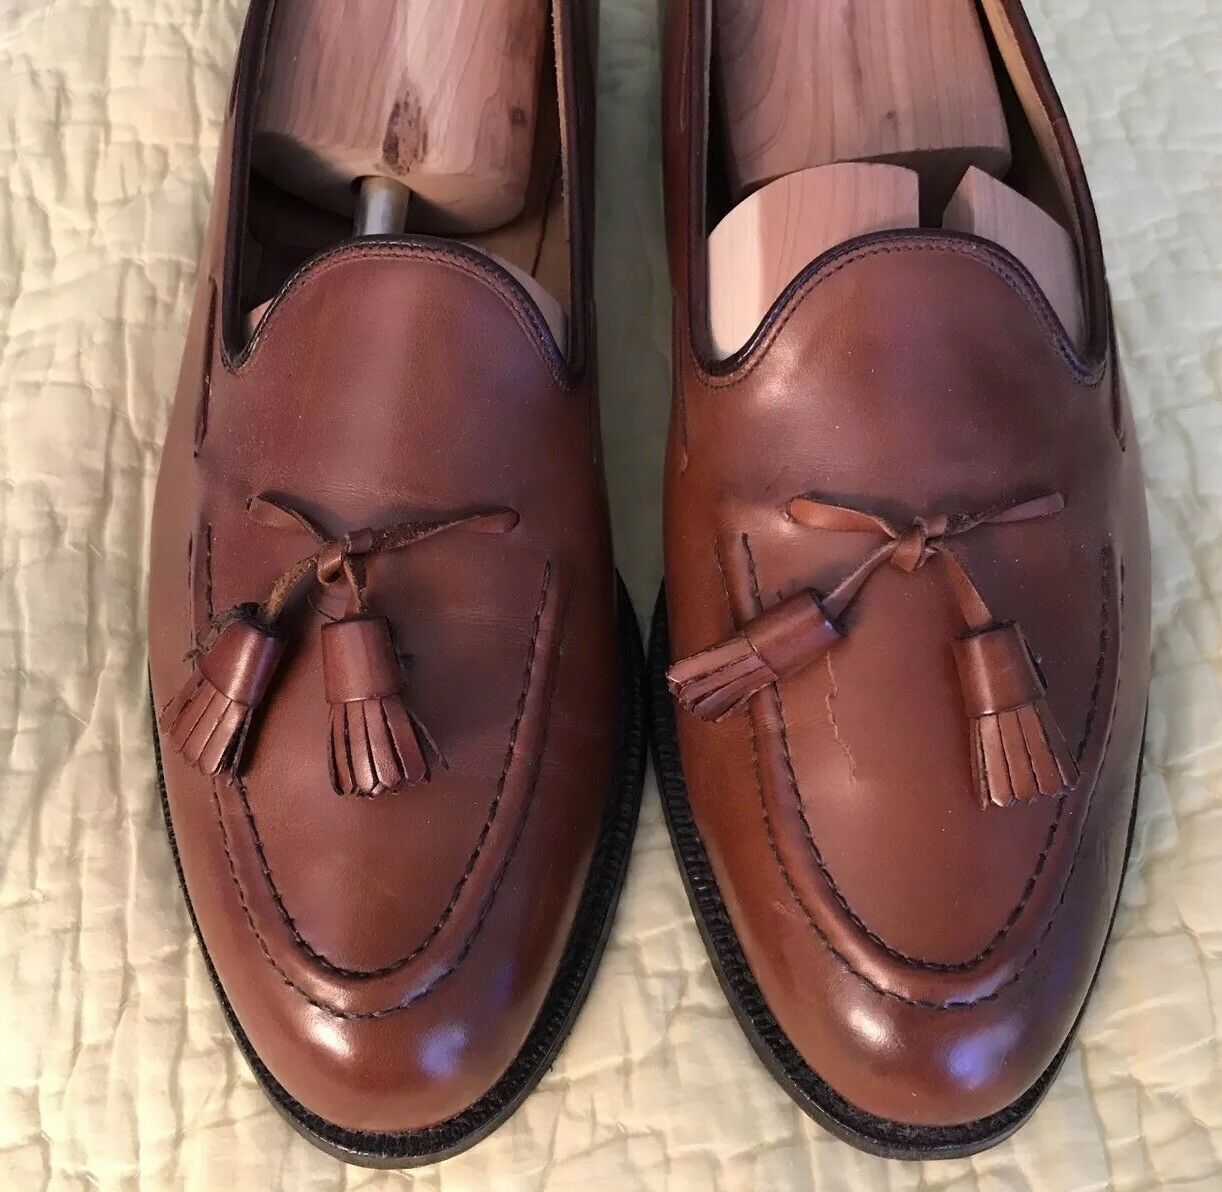 migliore marca KEATS KEATS KEATS Marrone  CHURCH'S  CUSTOM GRADE TASSEL SLIP ON LOAFER 12 D GUARANTEED  liquidazione fino al 70%